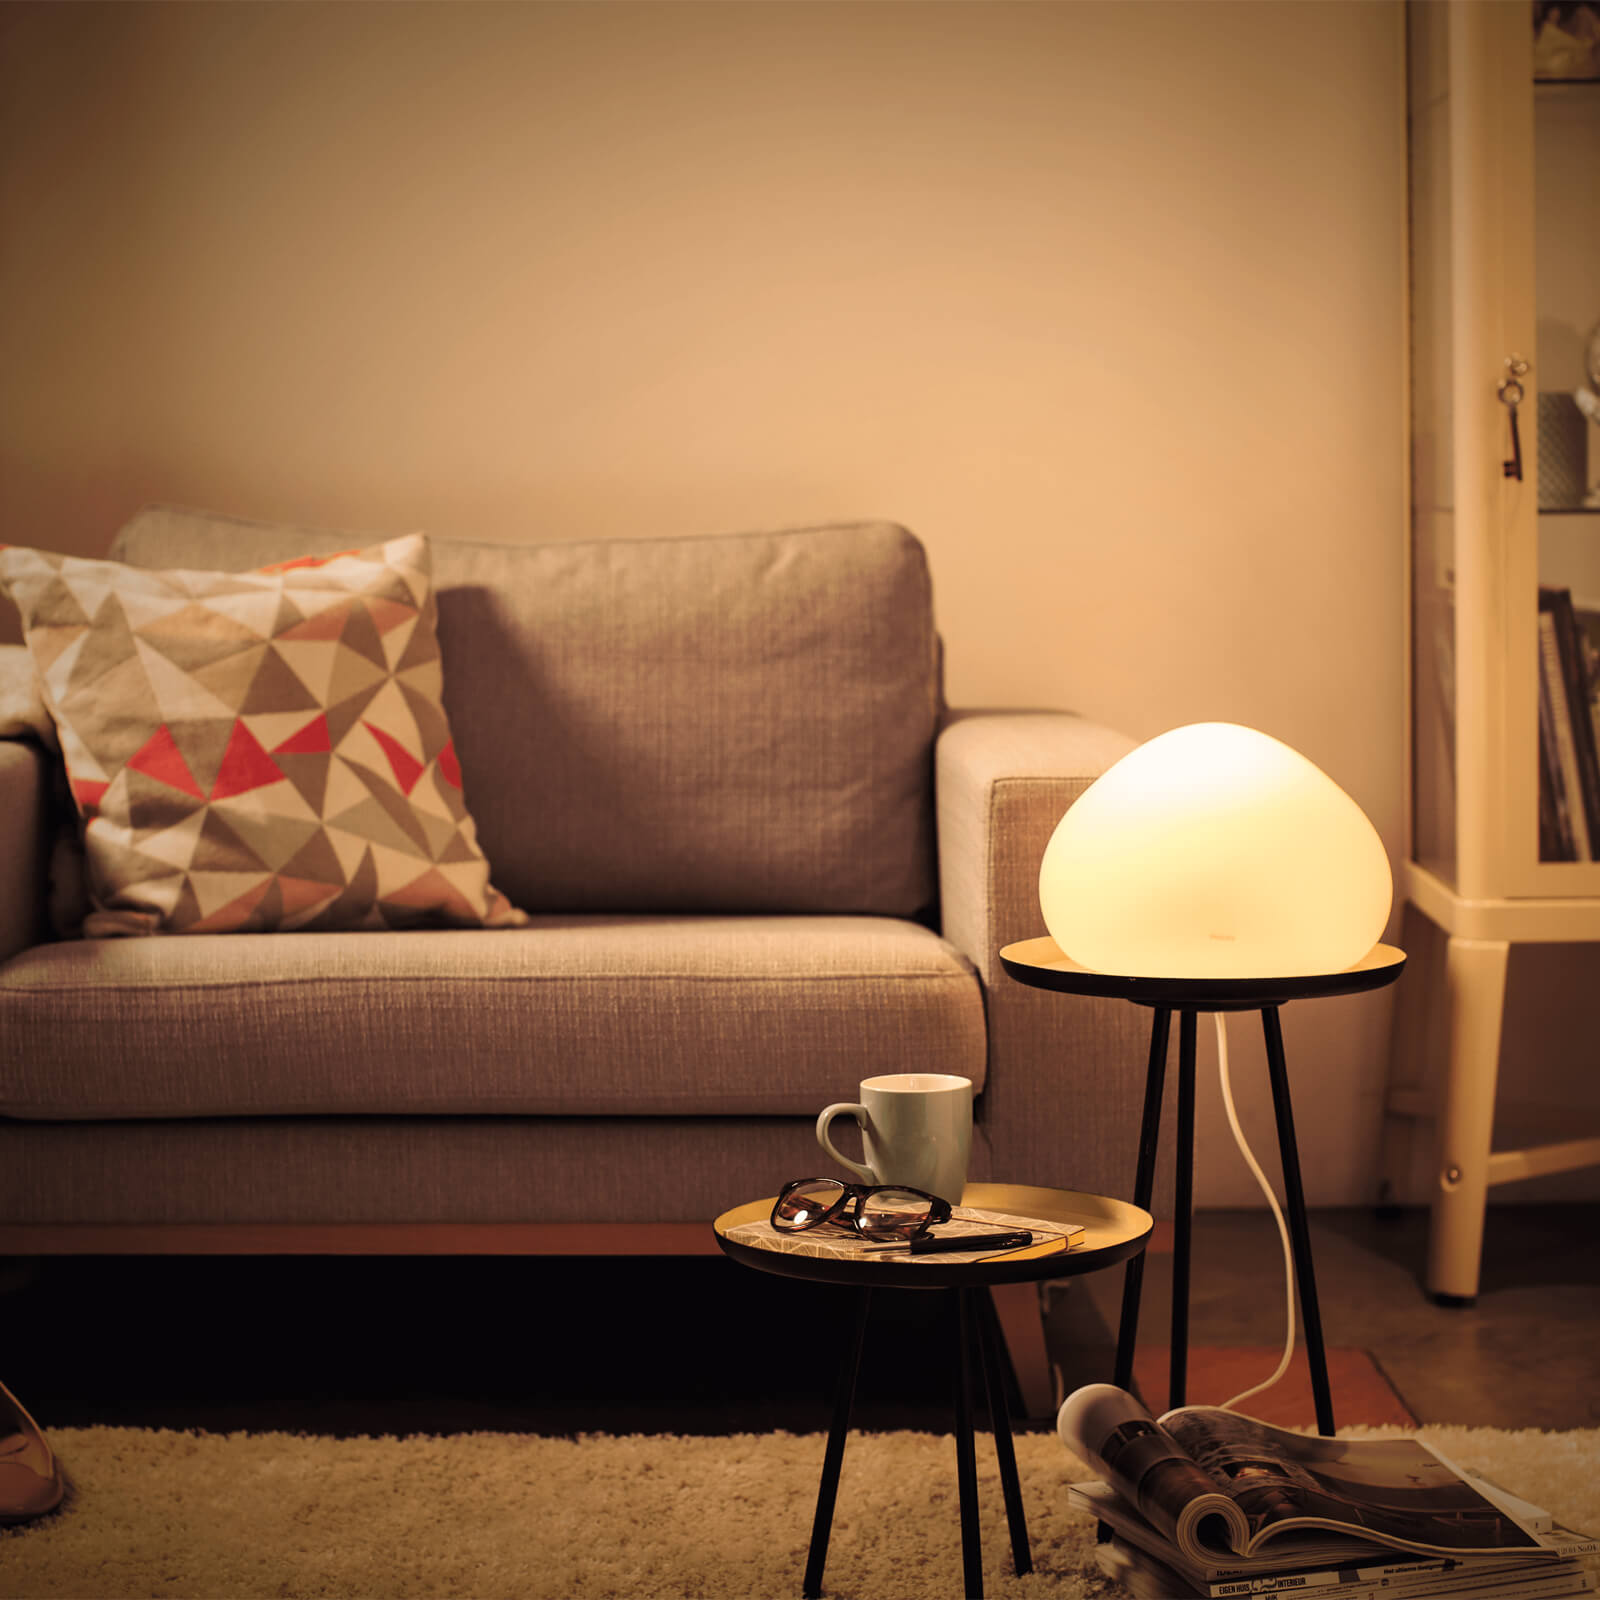 philips hue wellner lamp wit white ambiance incl dim switch. Black Bedroom Furniture Sets. Home Design Ideas